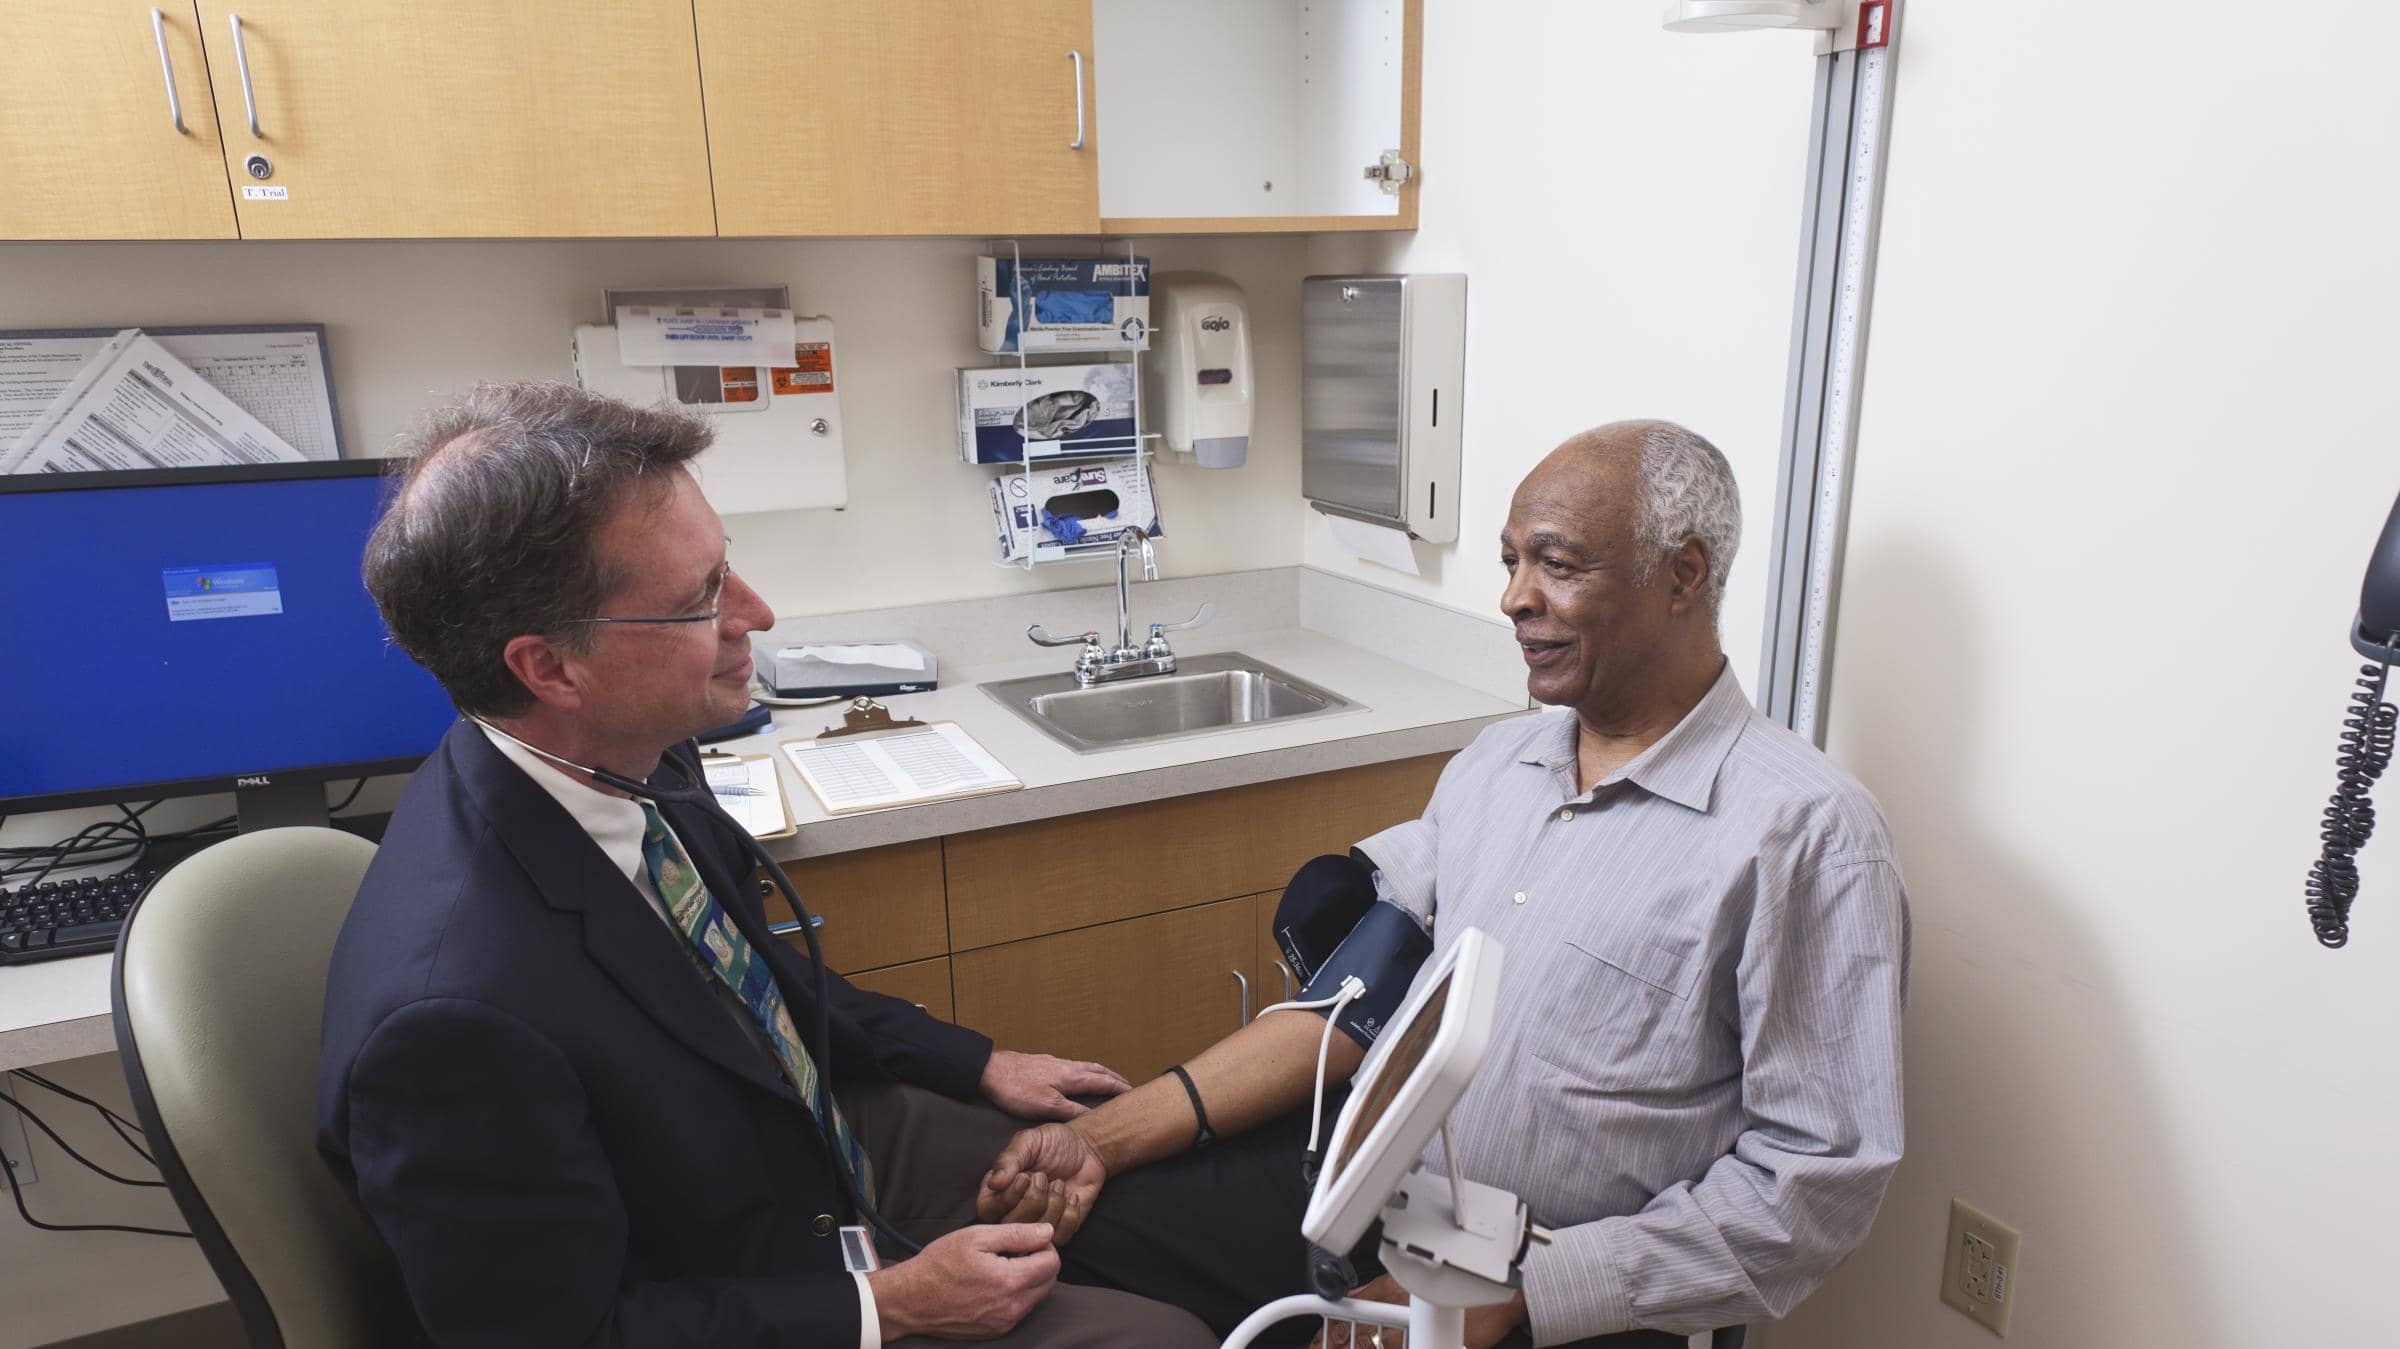 Dr. Gill taking a patient's blood pressure